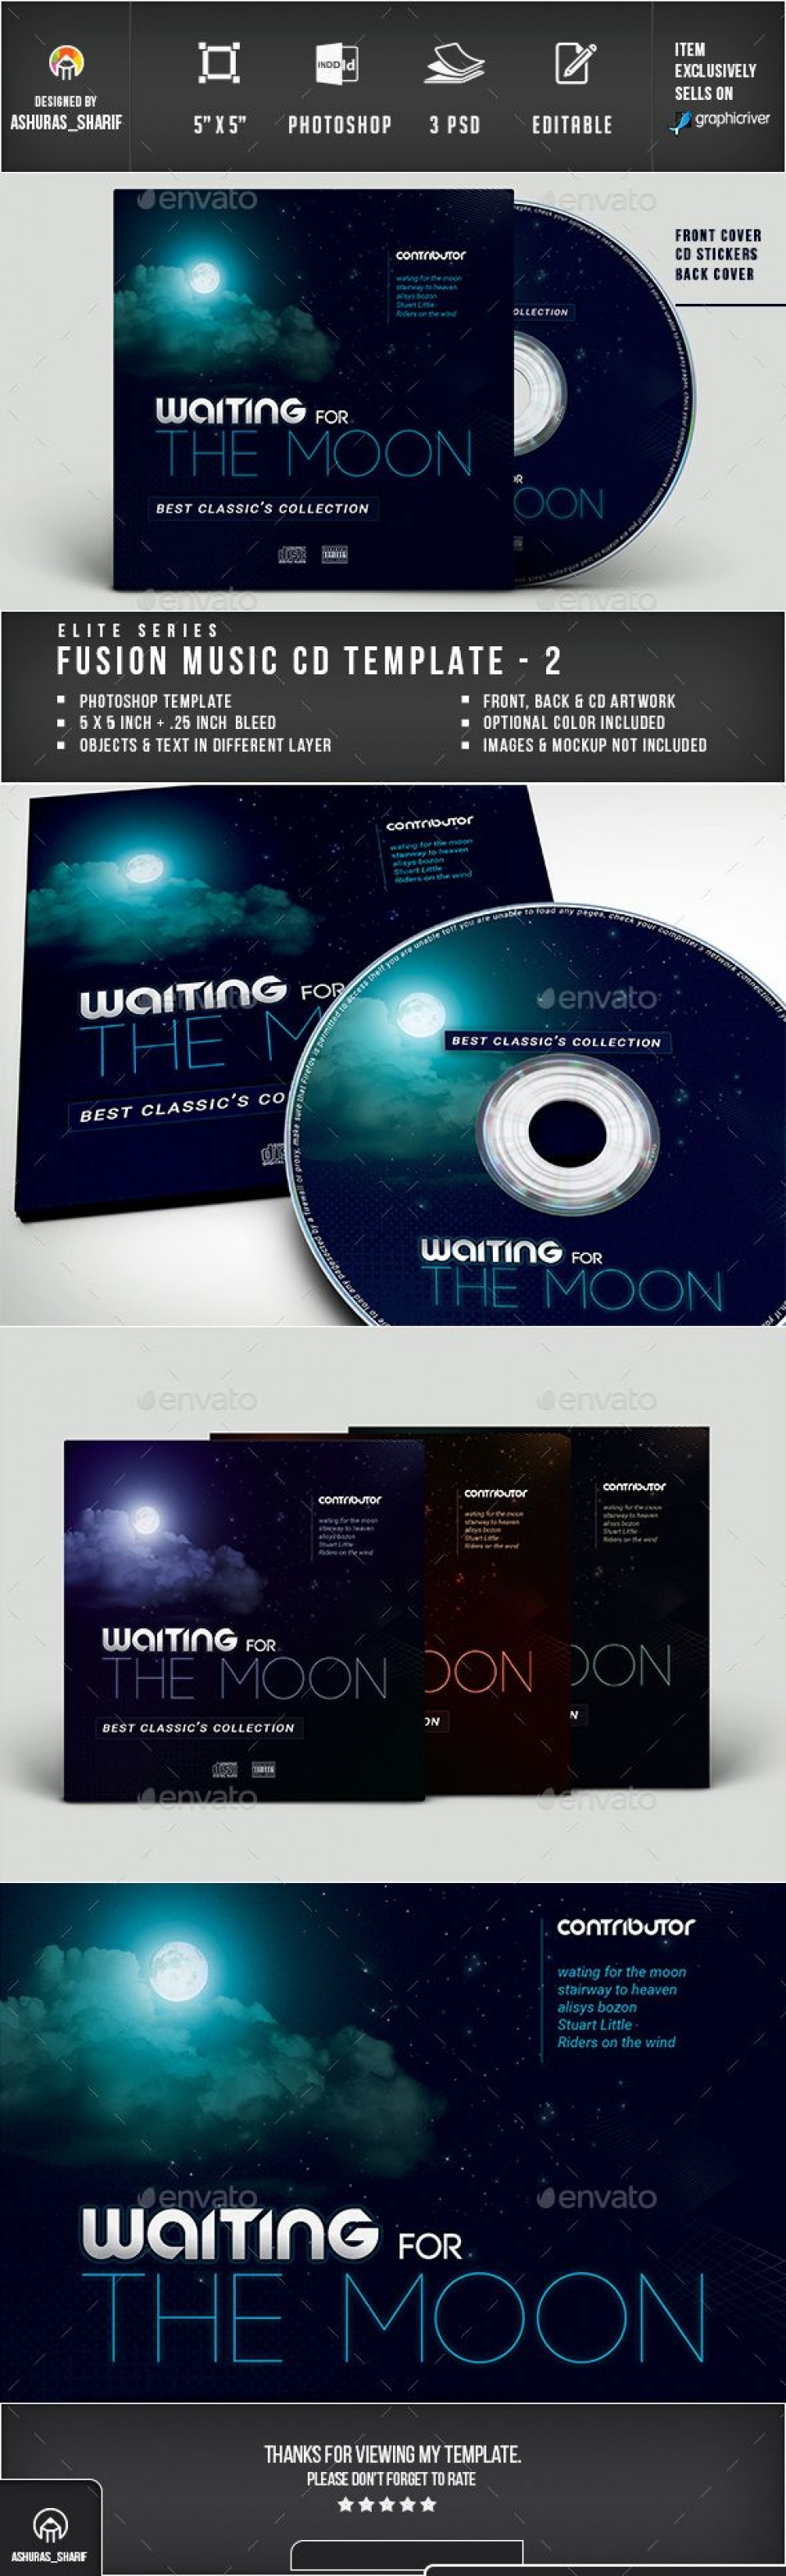 006 Impressive Cd Cover Design Template Photoshop Example  Label Psd Free960